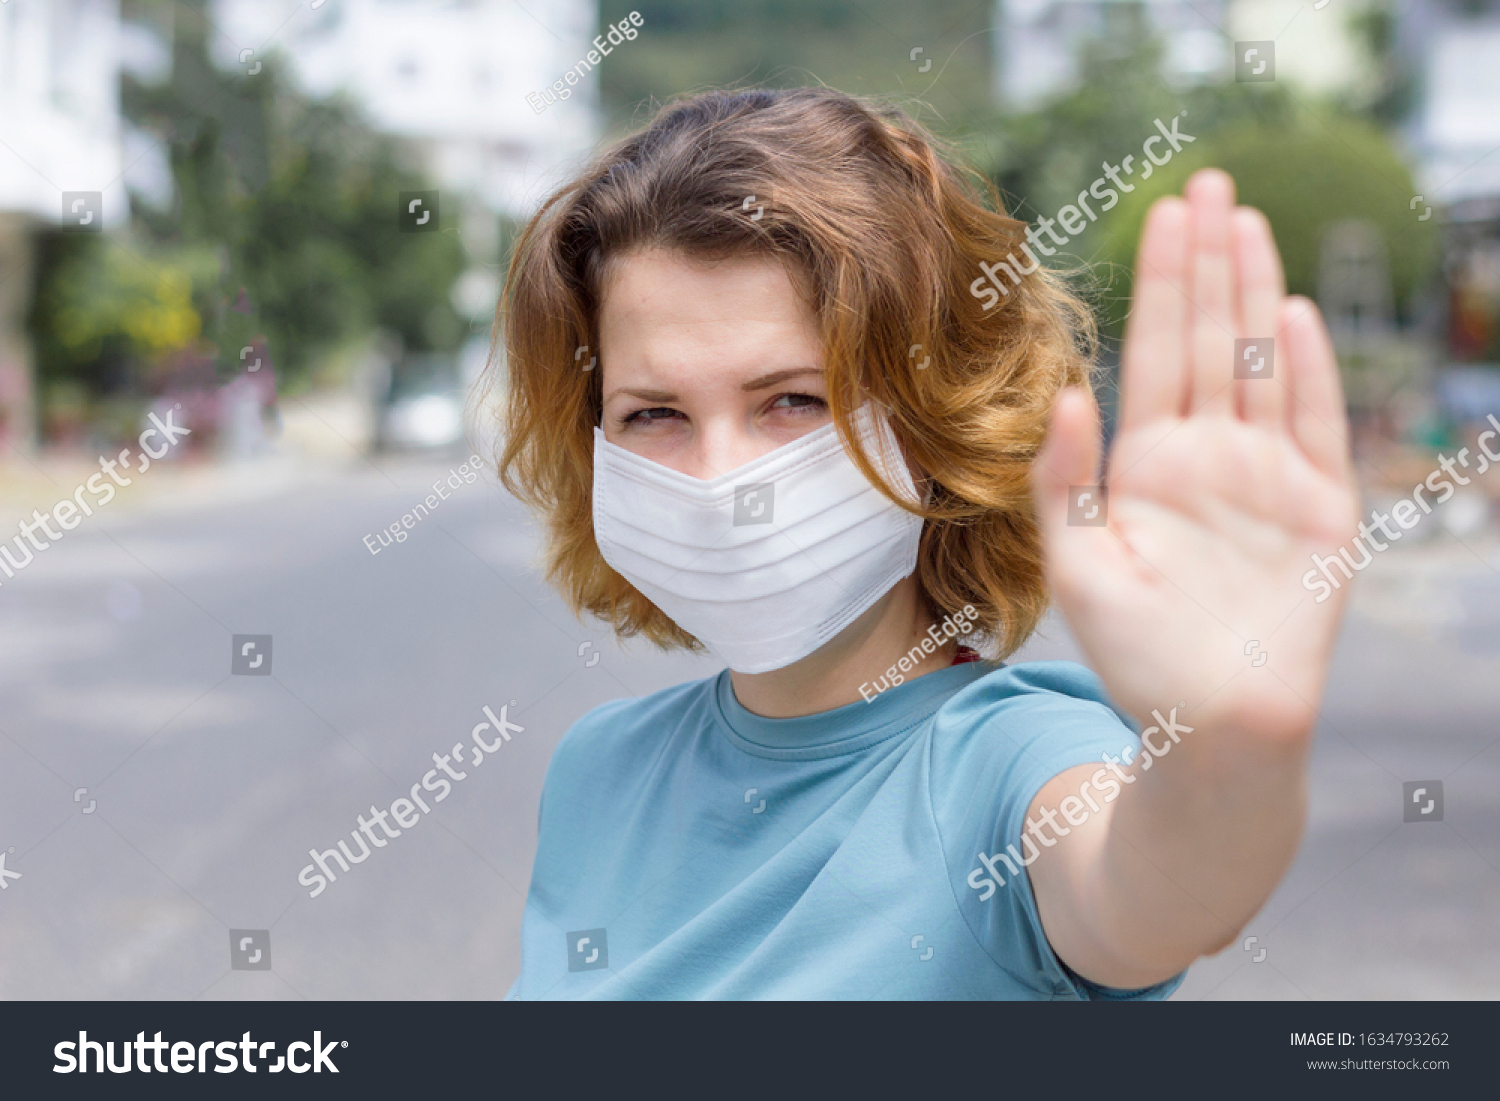 Girl, young woman in protective sterile medical mask on her face looking at camera outdoors, on asian street show palm, hand, stop no sign. Air pollution, virus, Chinese pandemic coronavirus concept. #1634793262